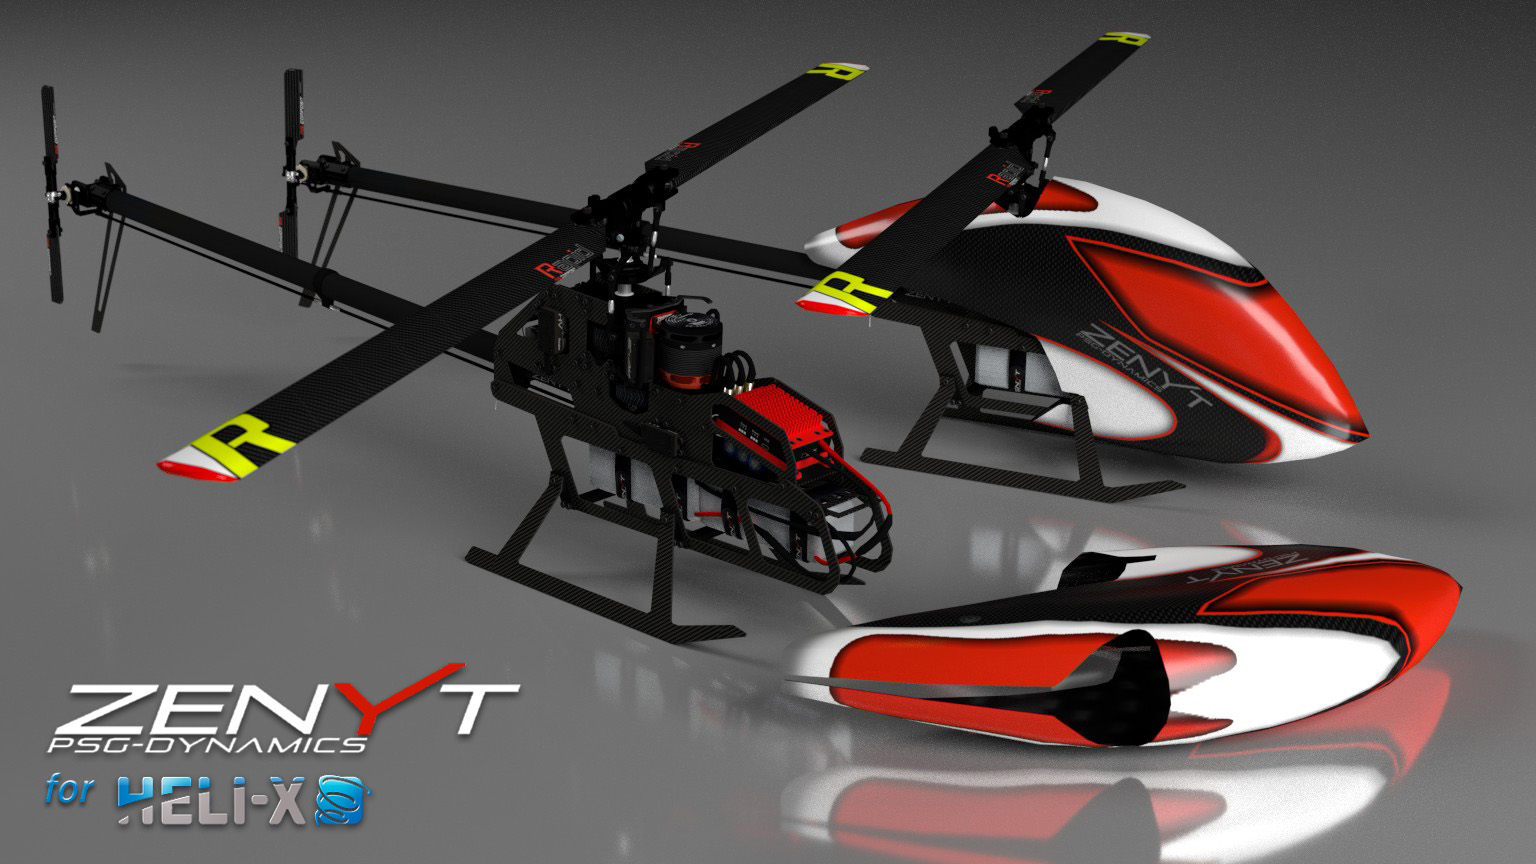 psg zenyt available for heli x. Black Bedroom Furniture Sets. Home Design Ideas